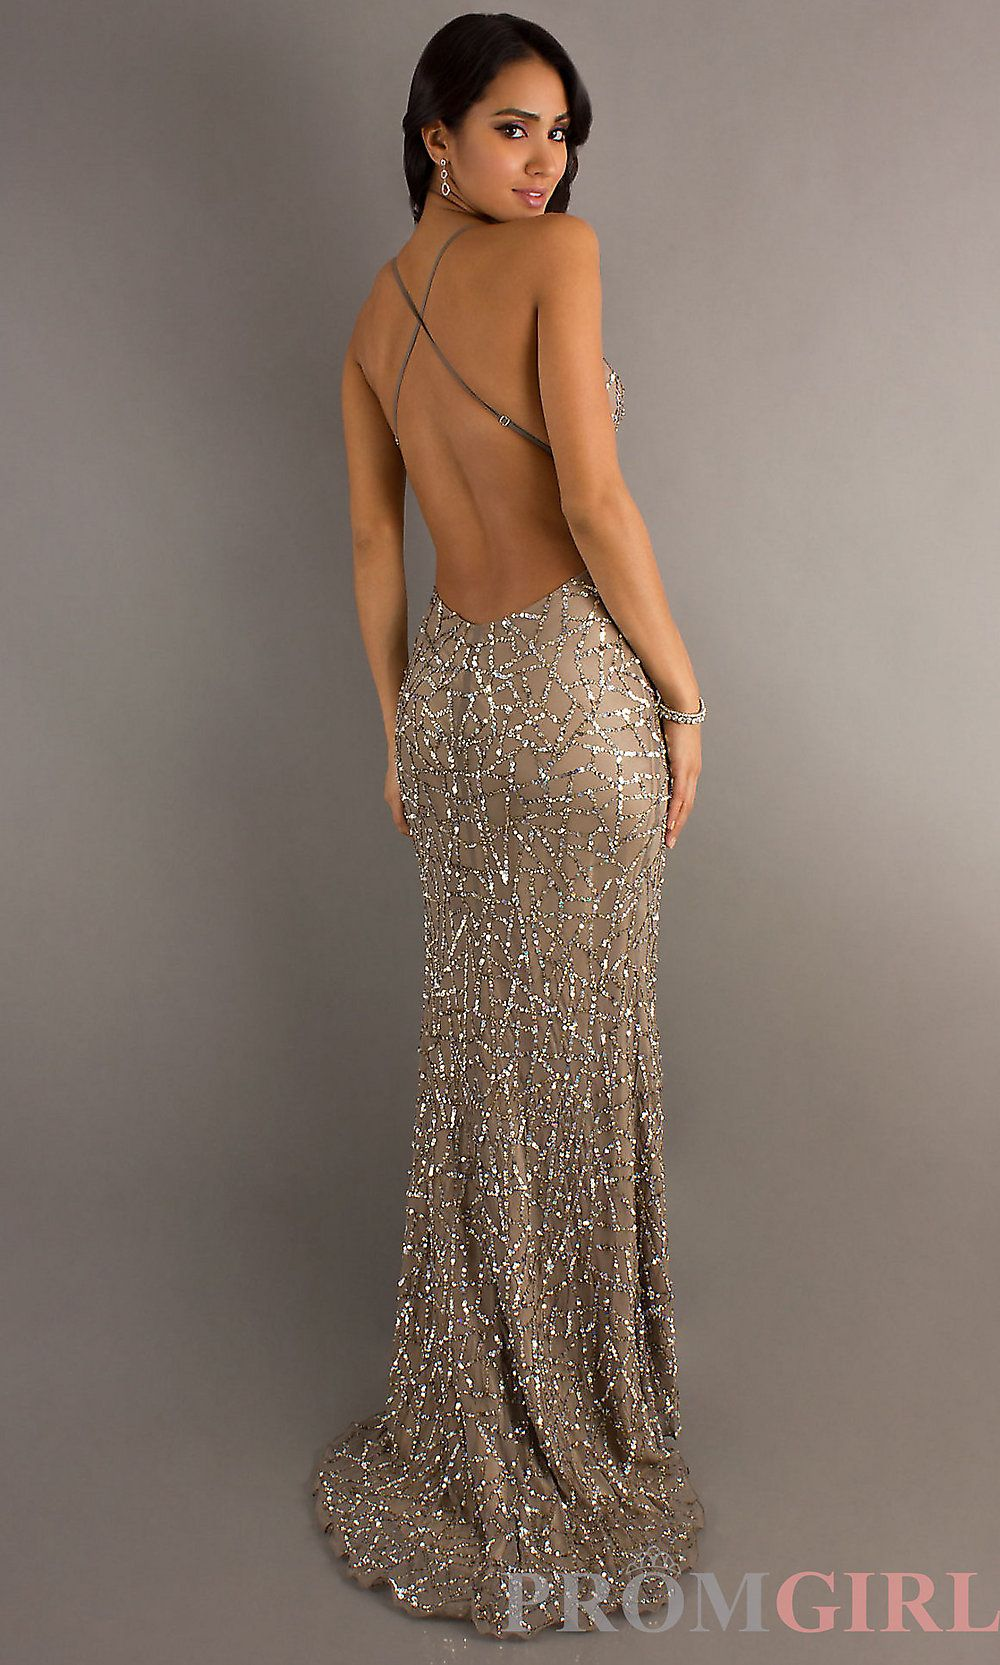 529586dc970c Backless Sequin Gowns, Scala Open Back Prom Dresses- PromGirl | Prom ...